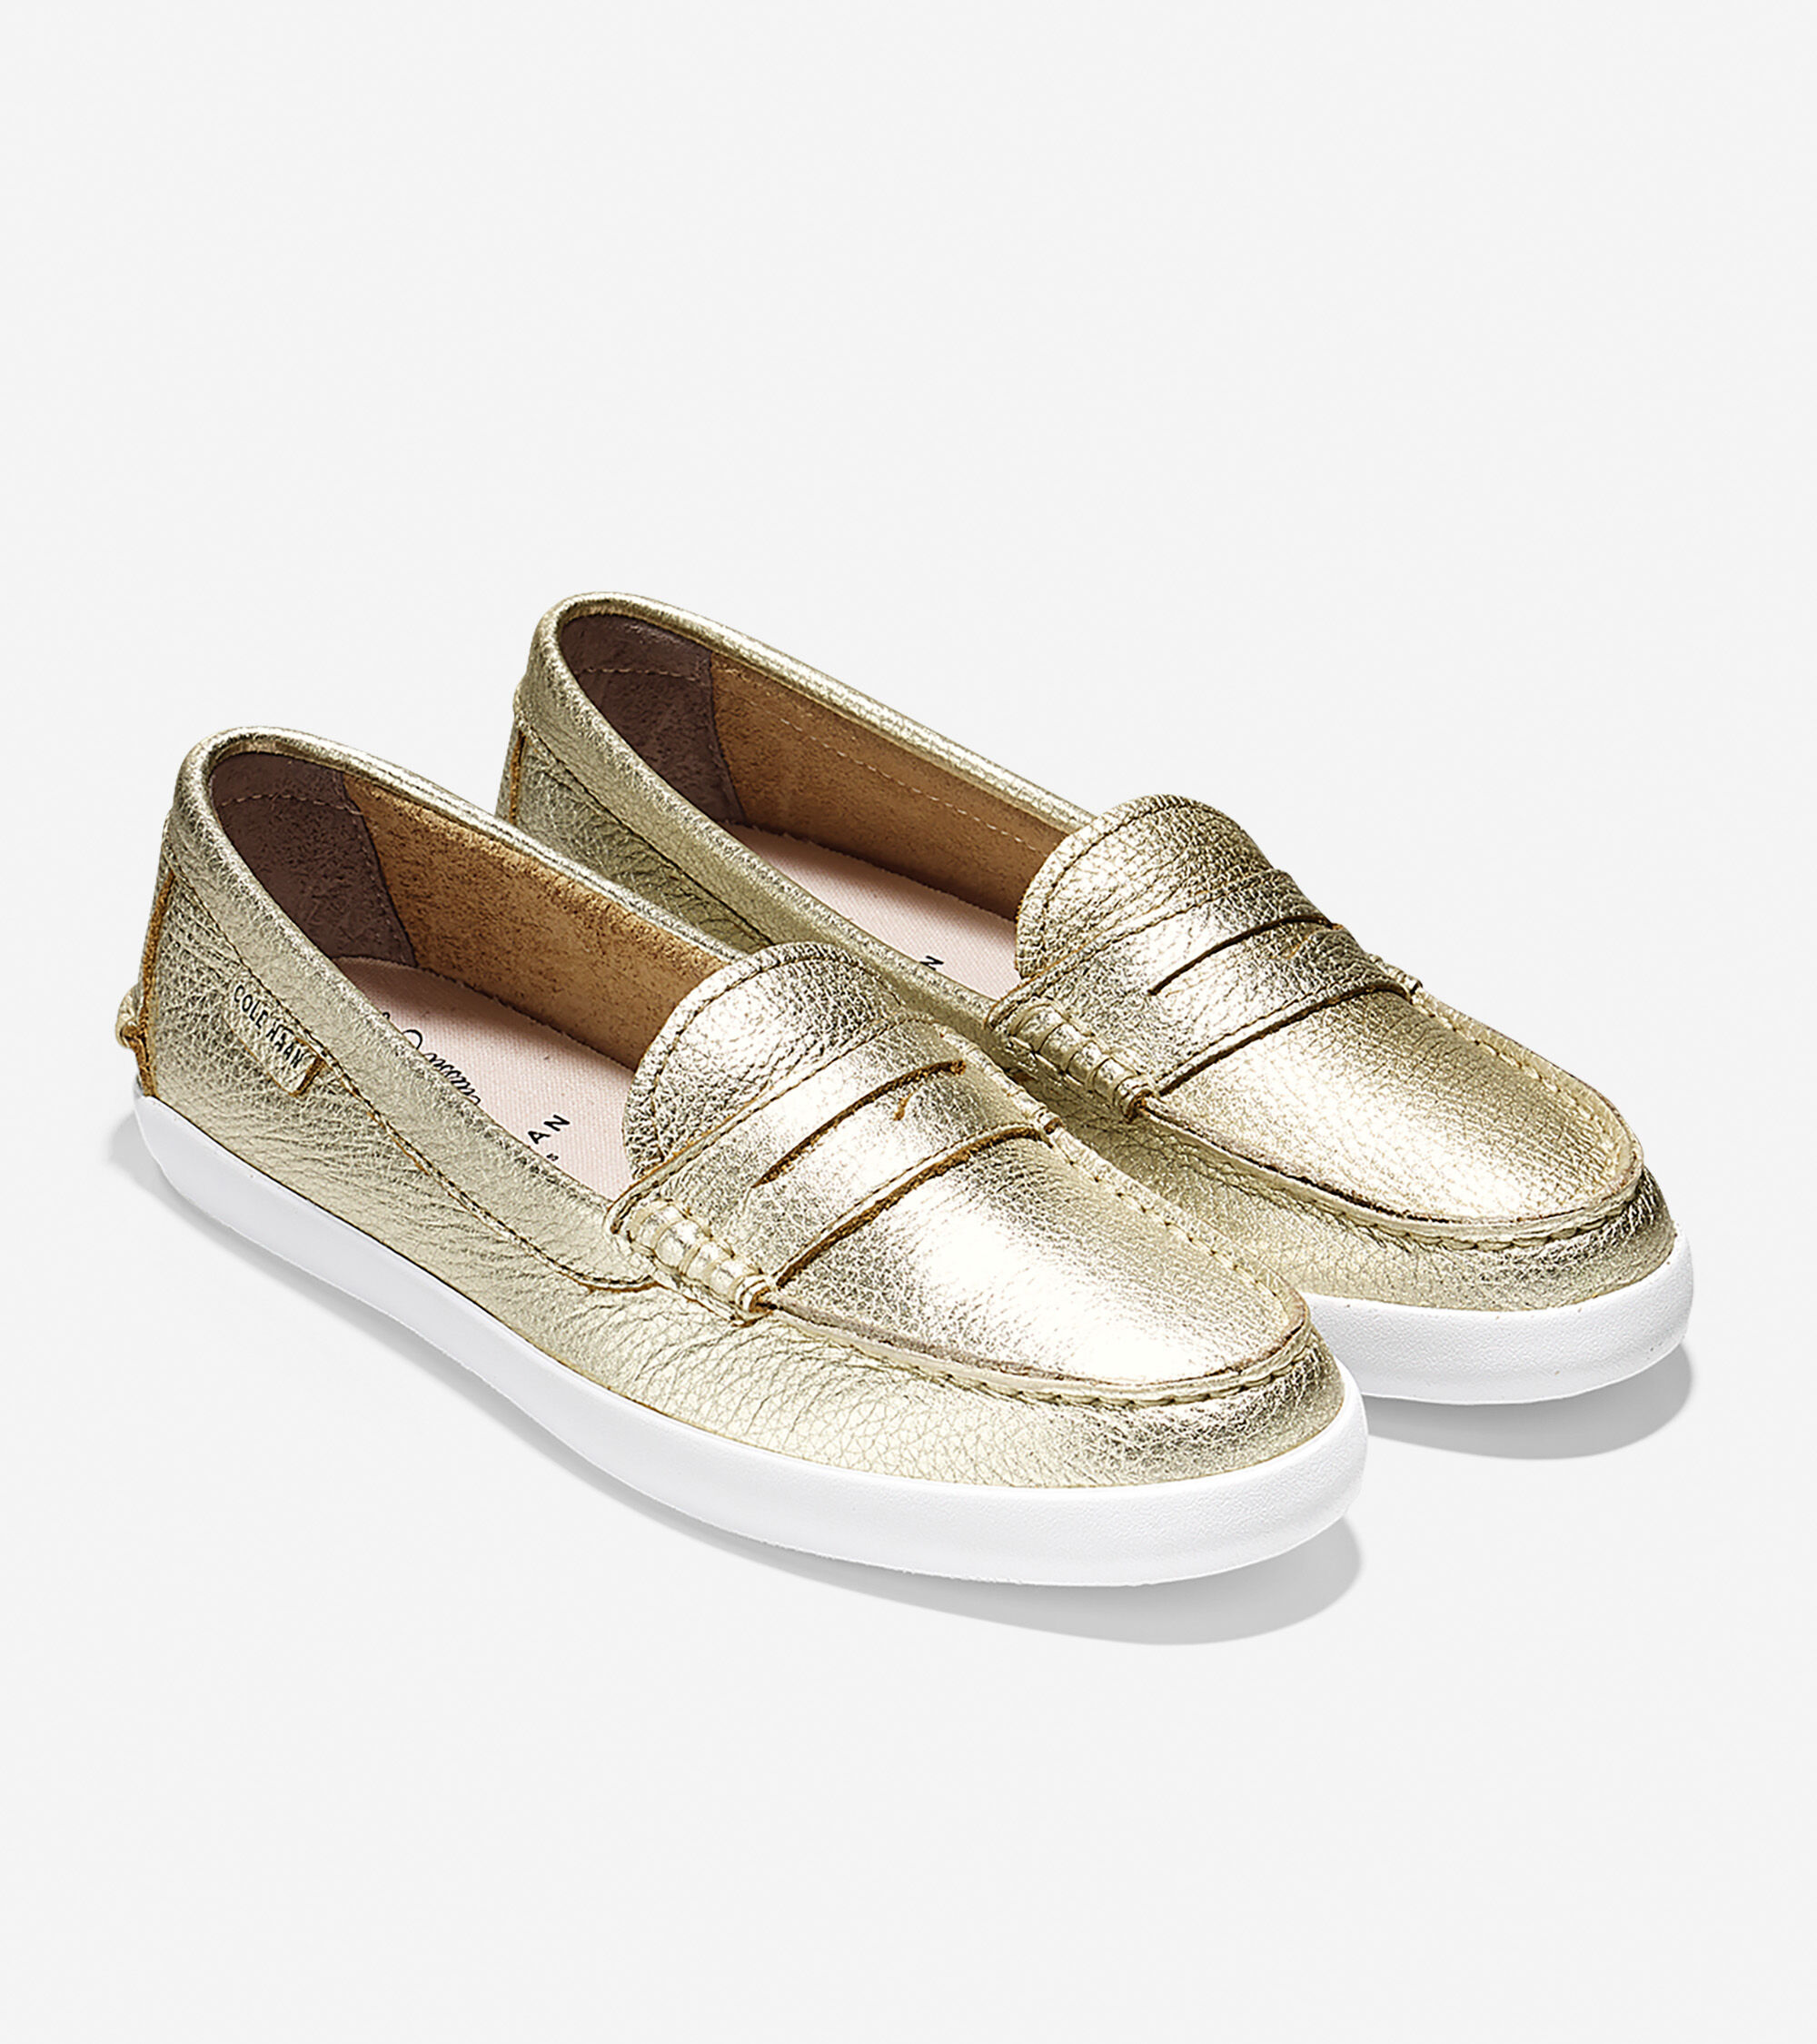 Cole Haan Leather Metallic Loafers how much rnxPp3p